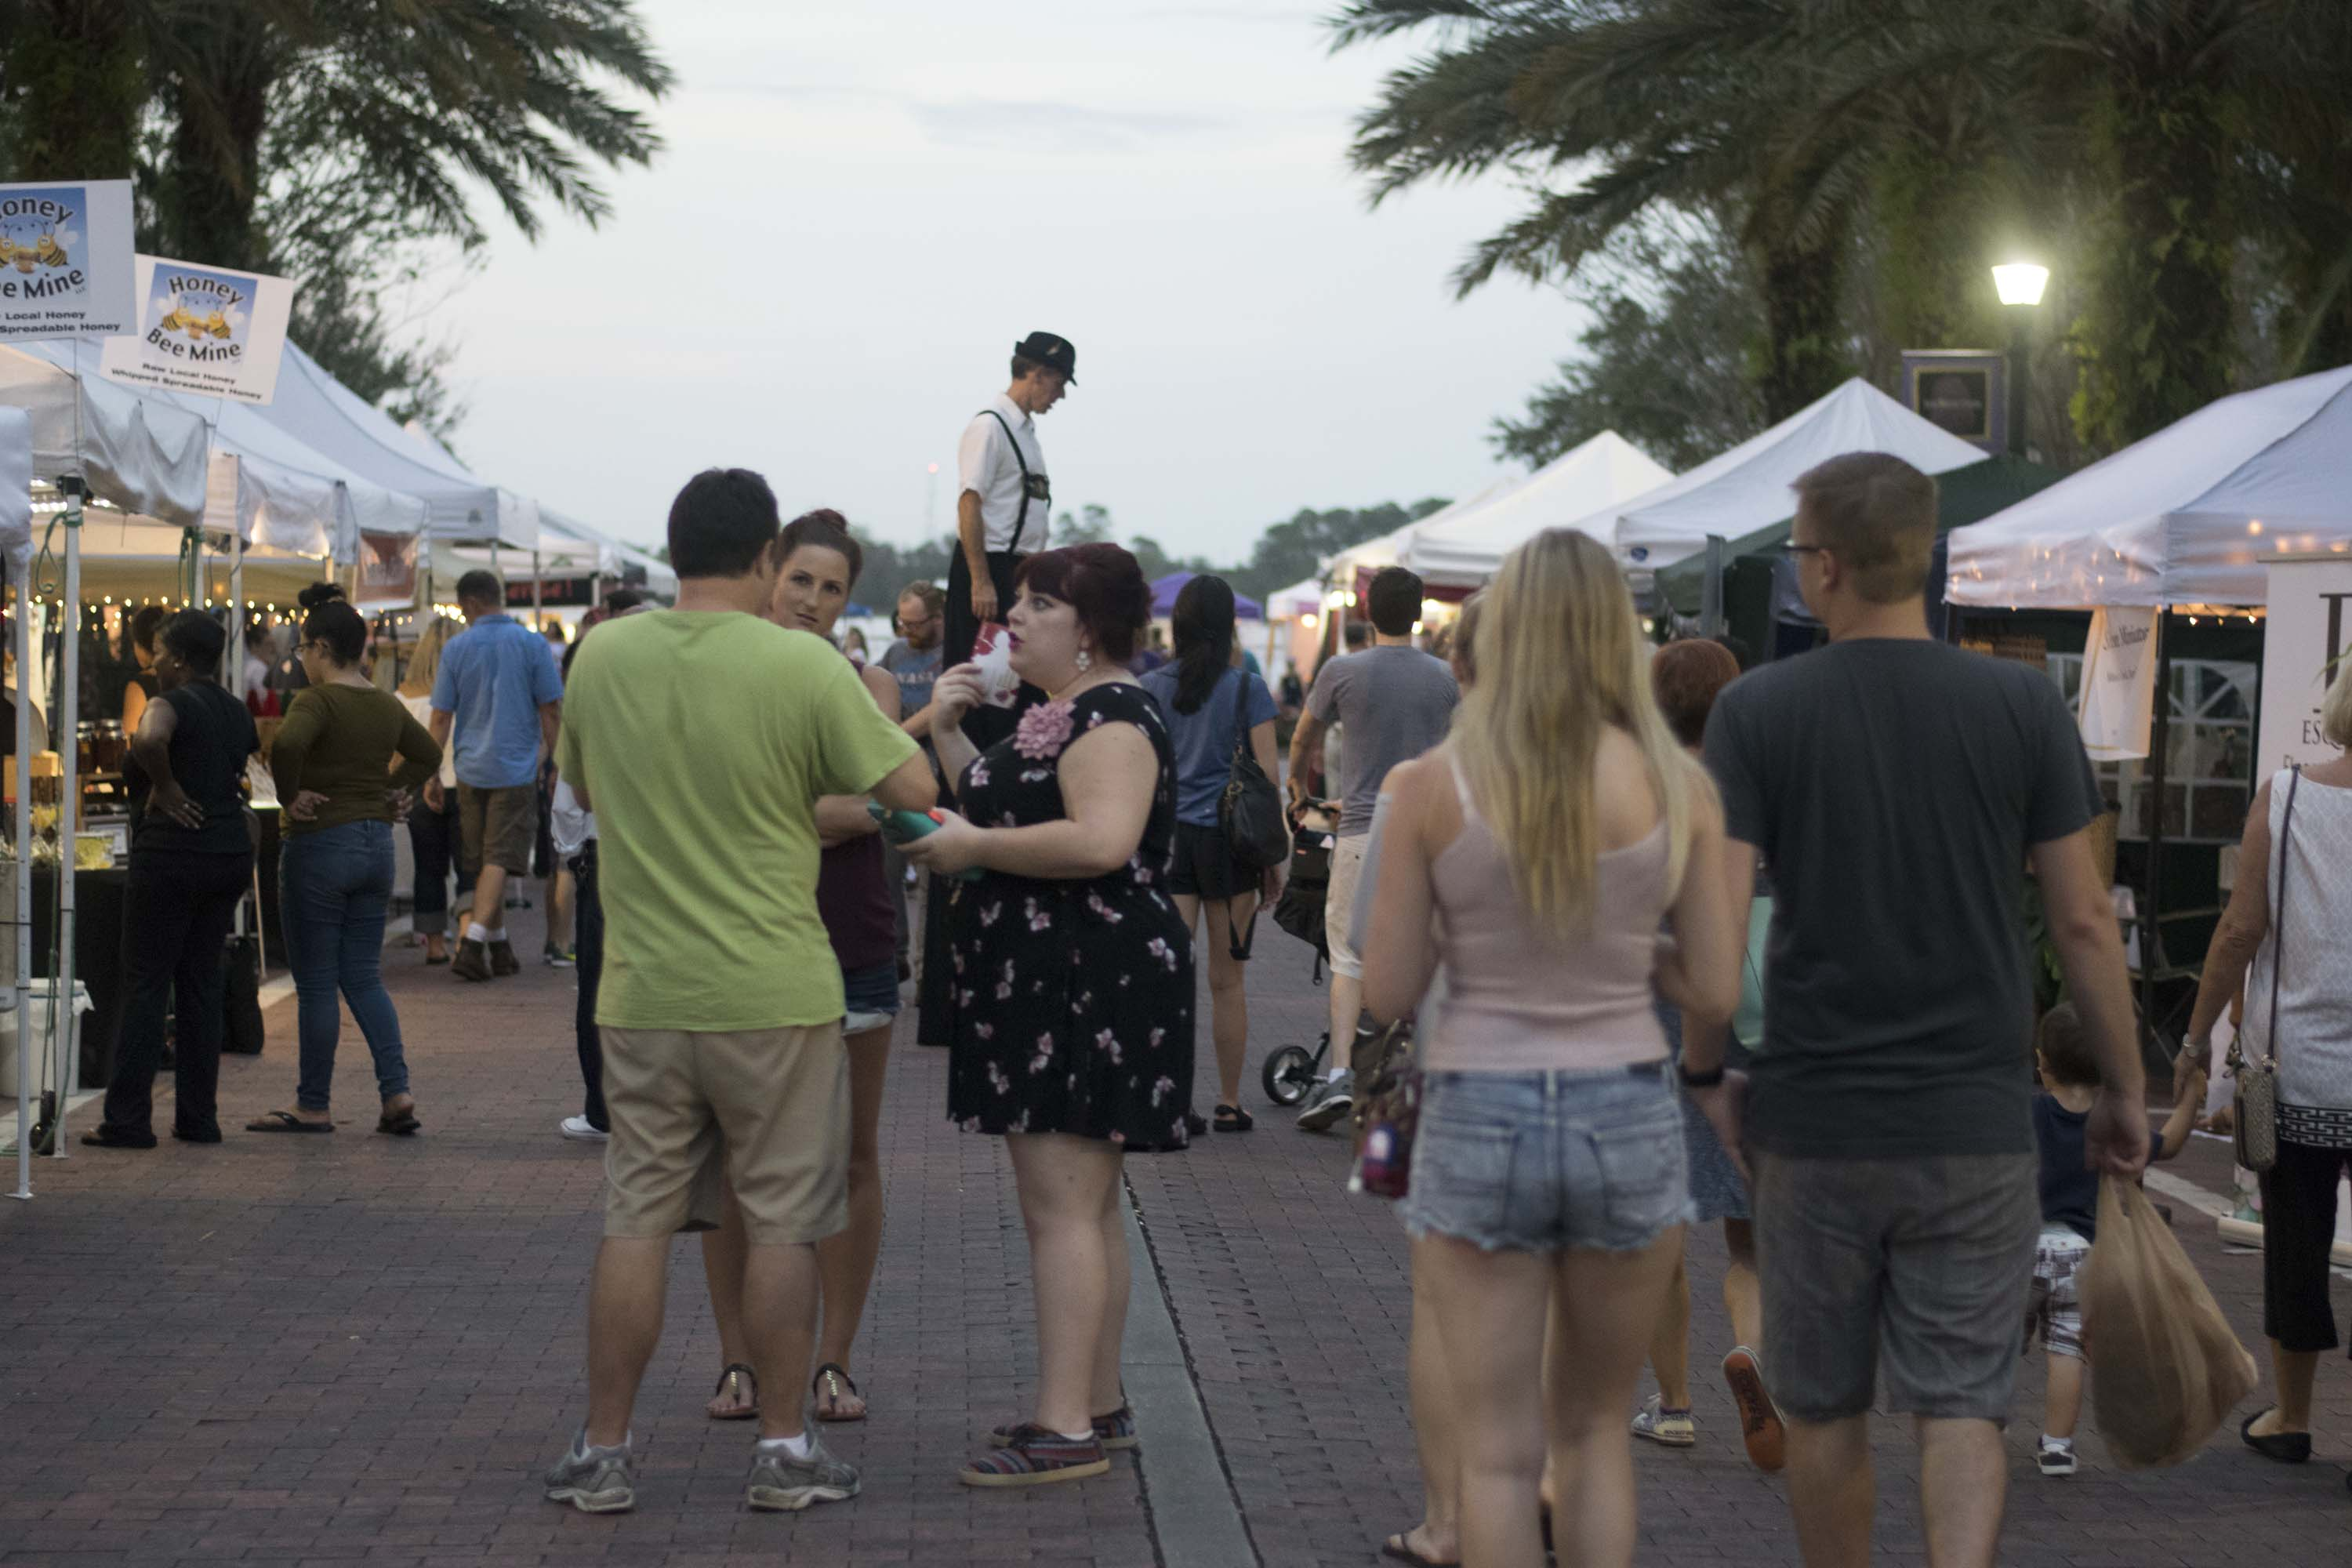 People walking in the event